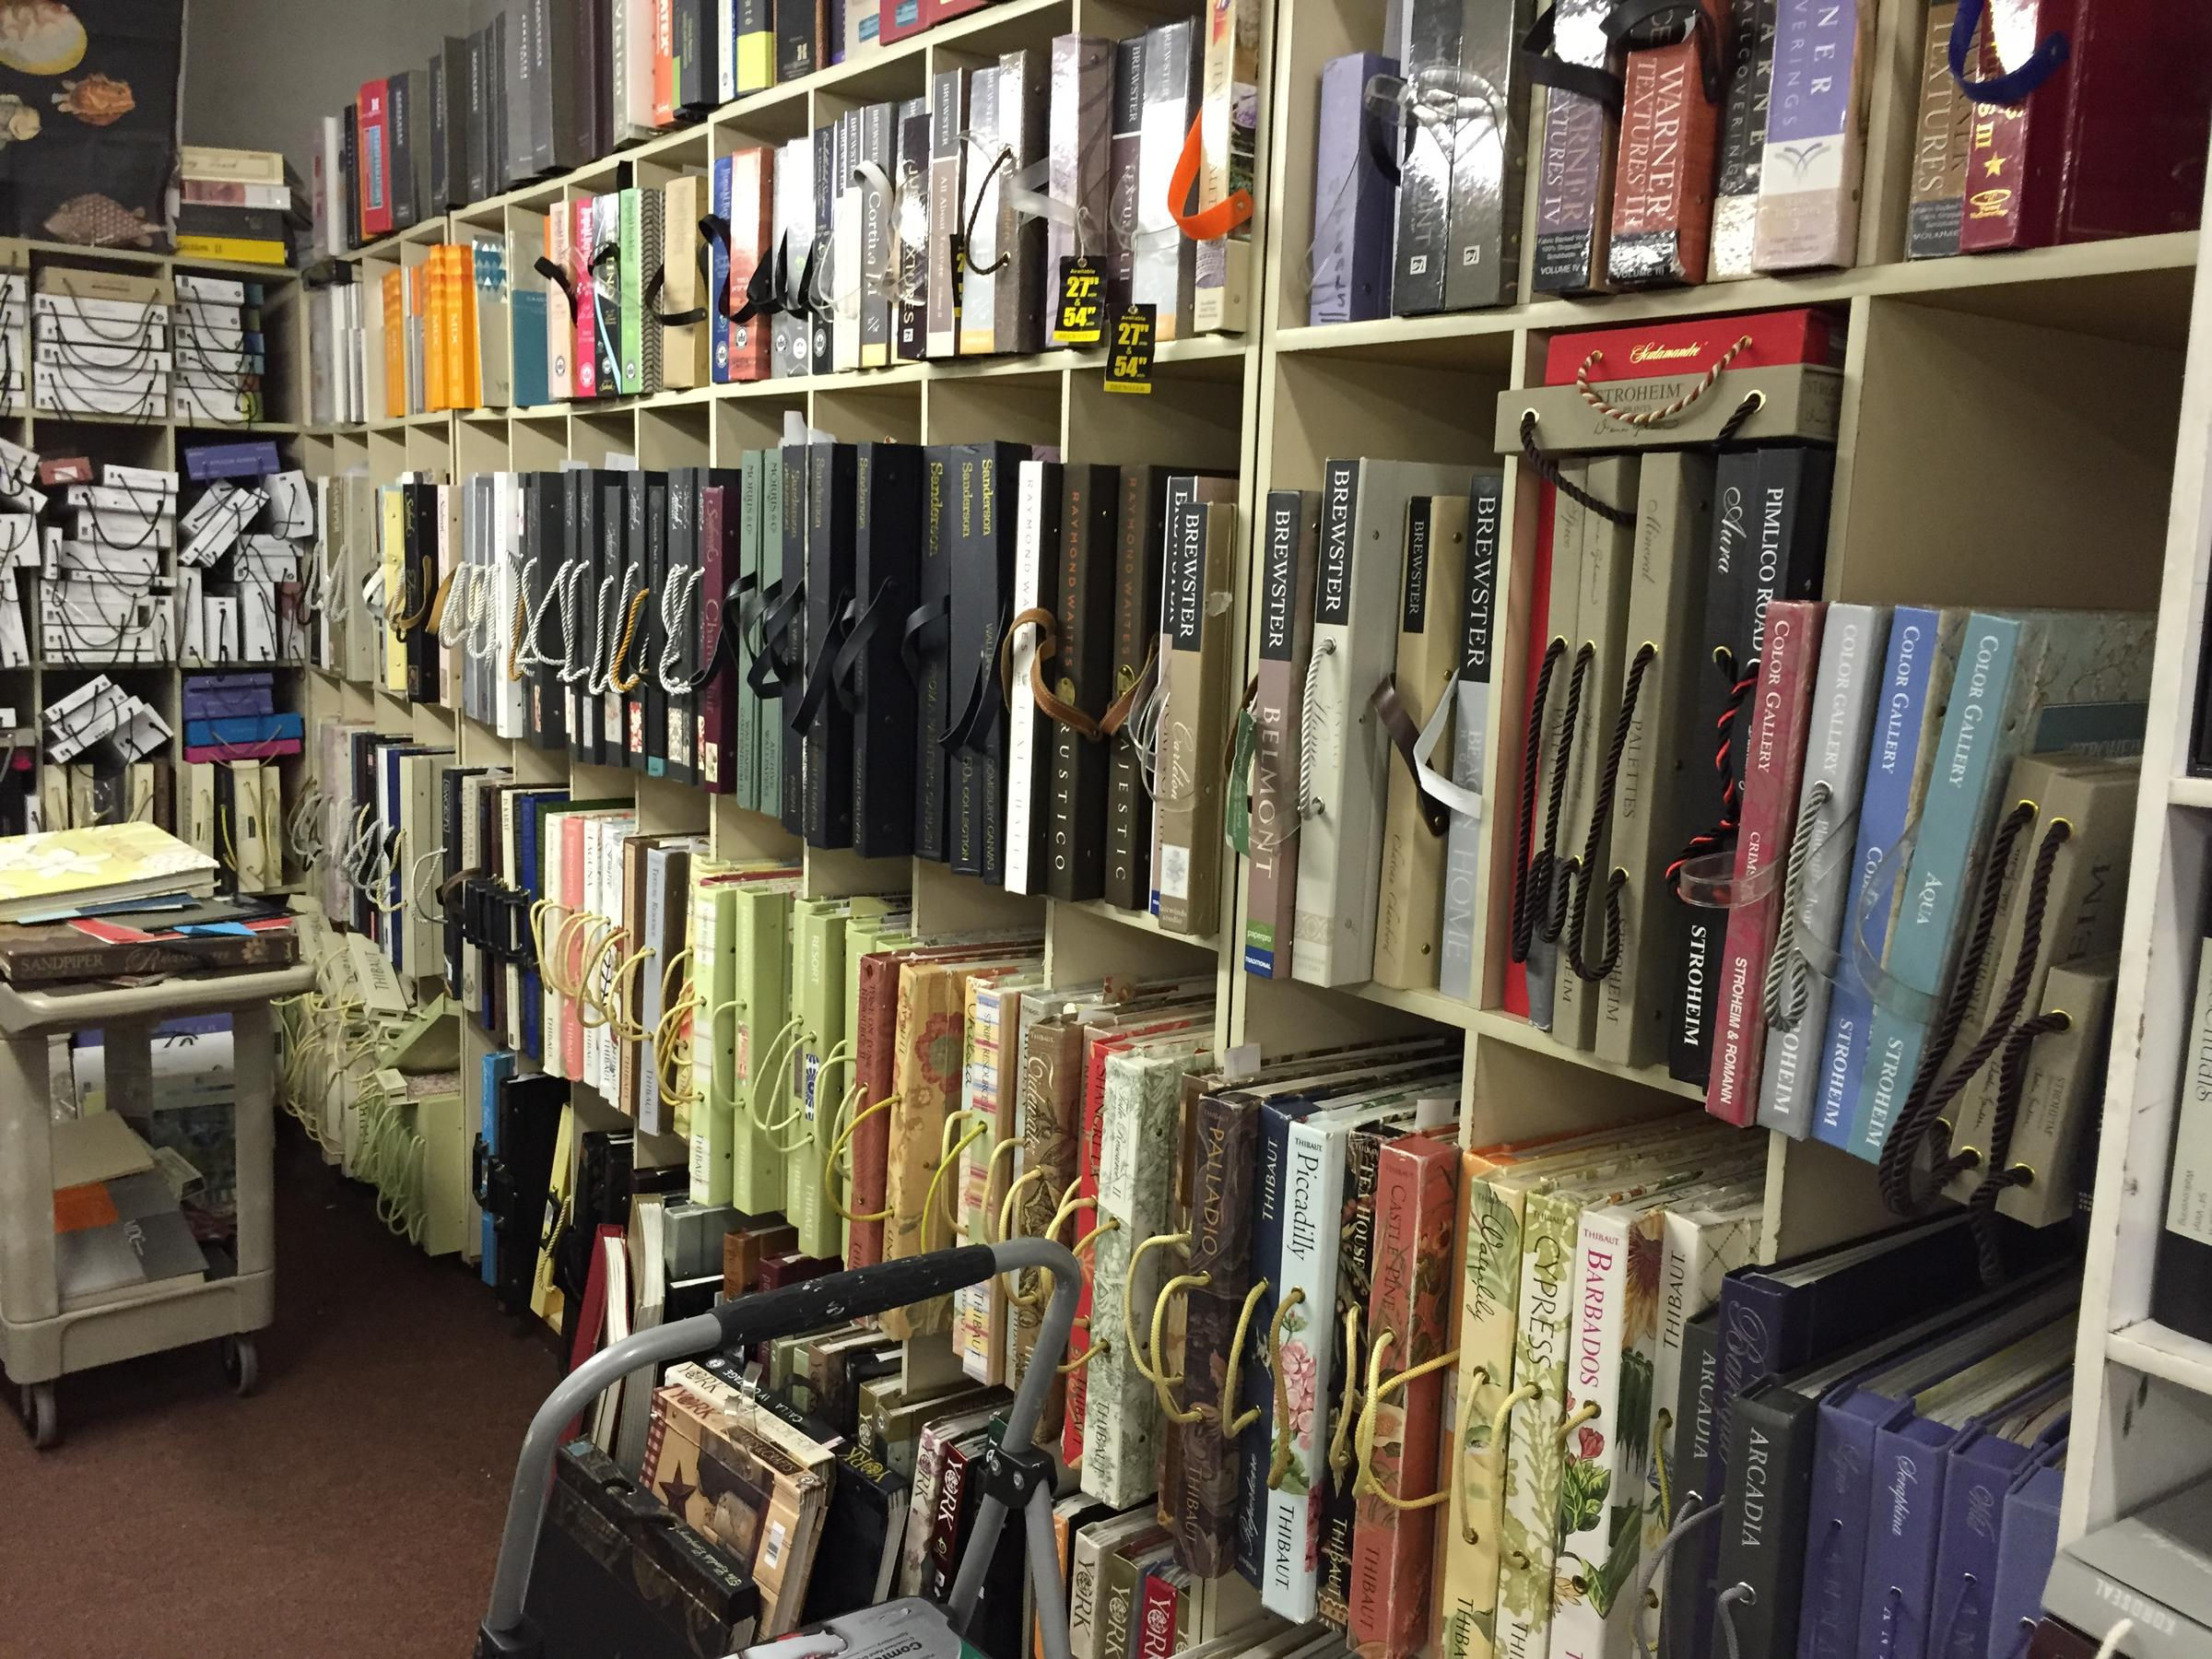 Shoppers can browse rows of sample books at Wallpaper Wallpaper in Wauwatosa, a shop that's operated for 30 years.